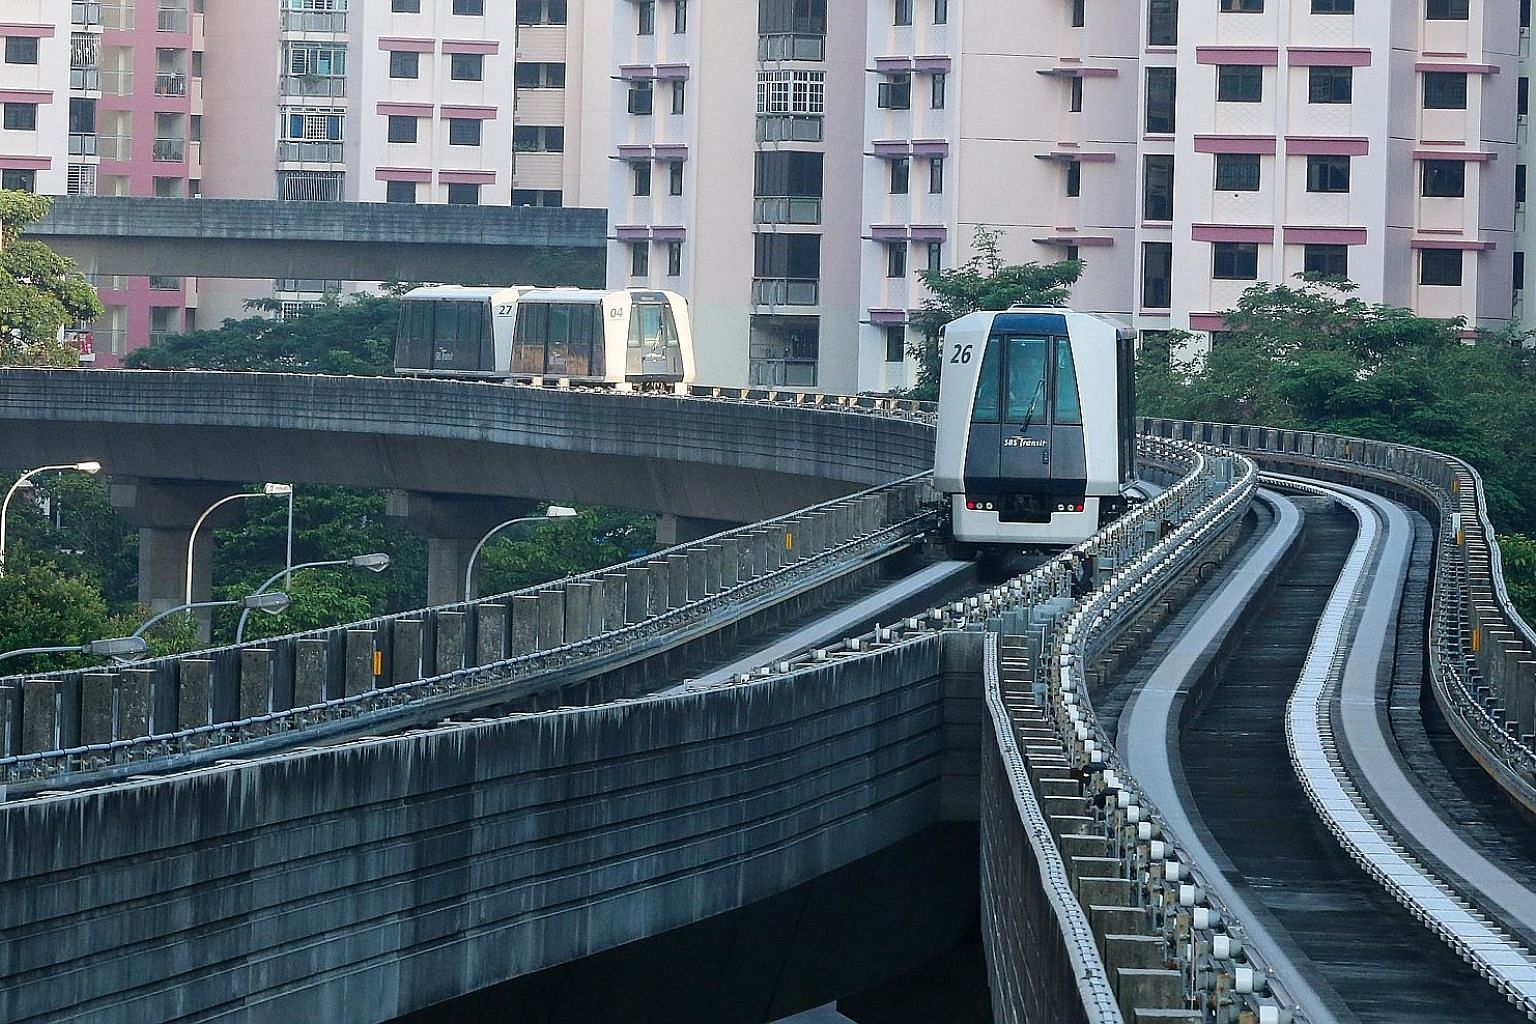 SBS Transit enjoyed increased ridership at its rail business during the second quarter, with the Sengkang-Punggol LRT line (above) clocking 119,000 passenger trips, up 6.1 per cent. The company declared an interim dividend of 3.65 cents per share for